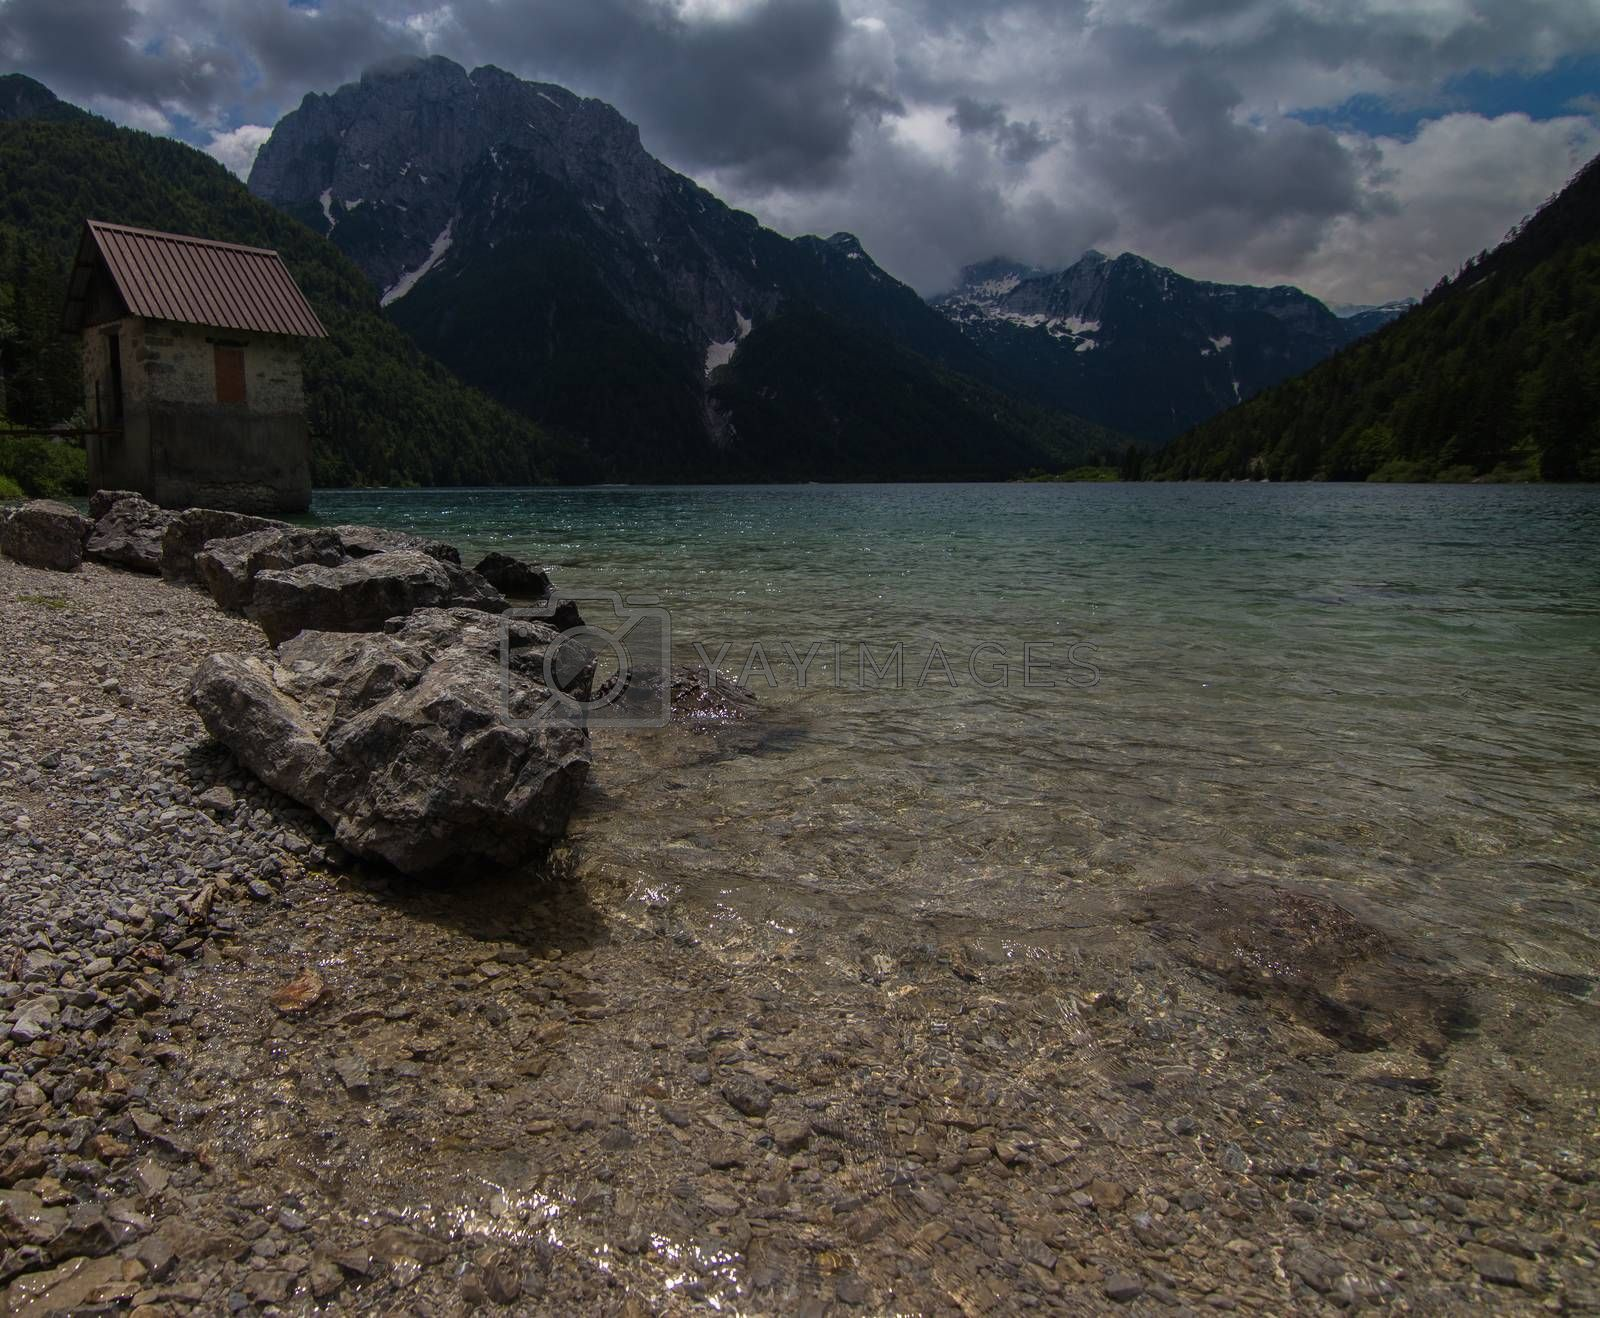 A view over the beautiful Lago del Predil in Northern Italy